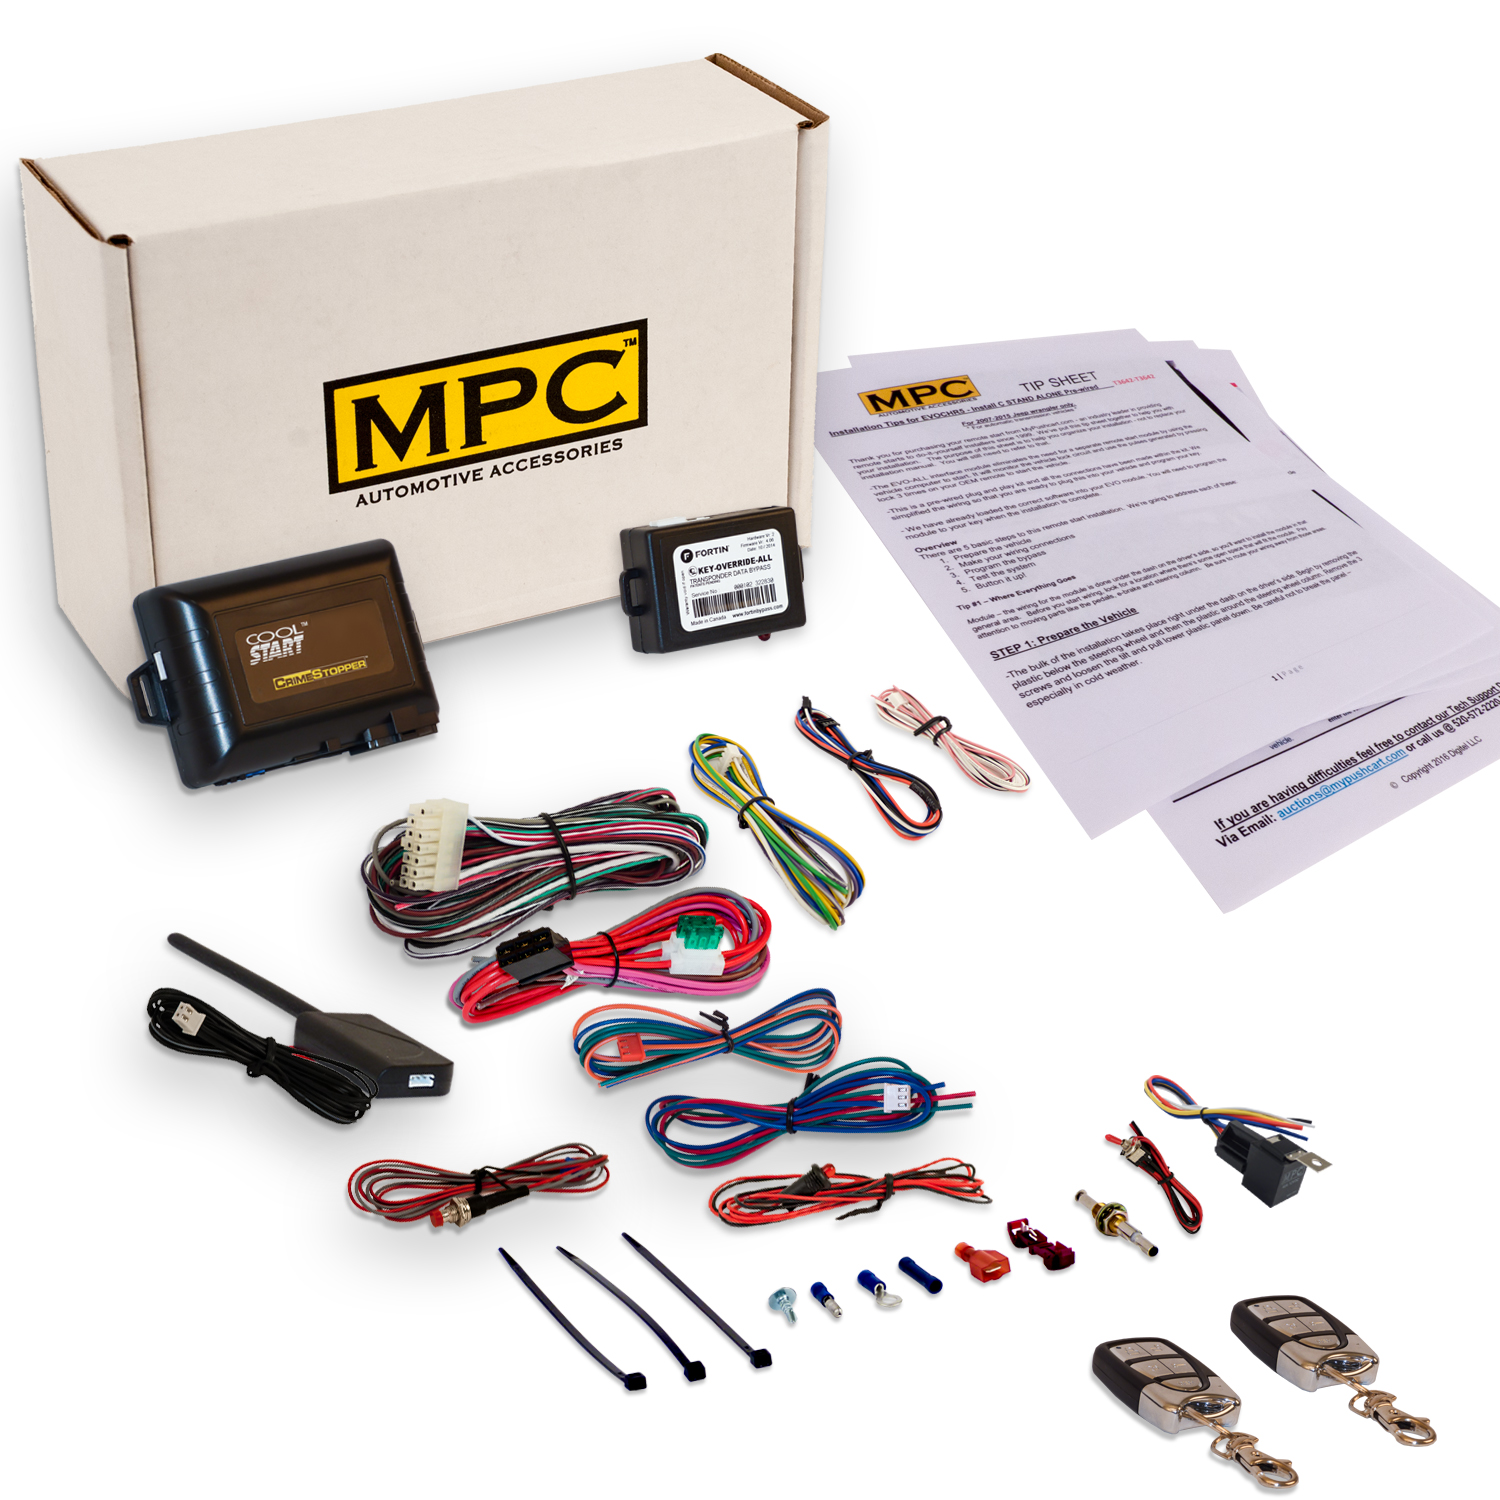 MPC Complete Remote Start/Keyless Entry Kit For 2006-2010 Mazda 5 - Includes Bypass